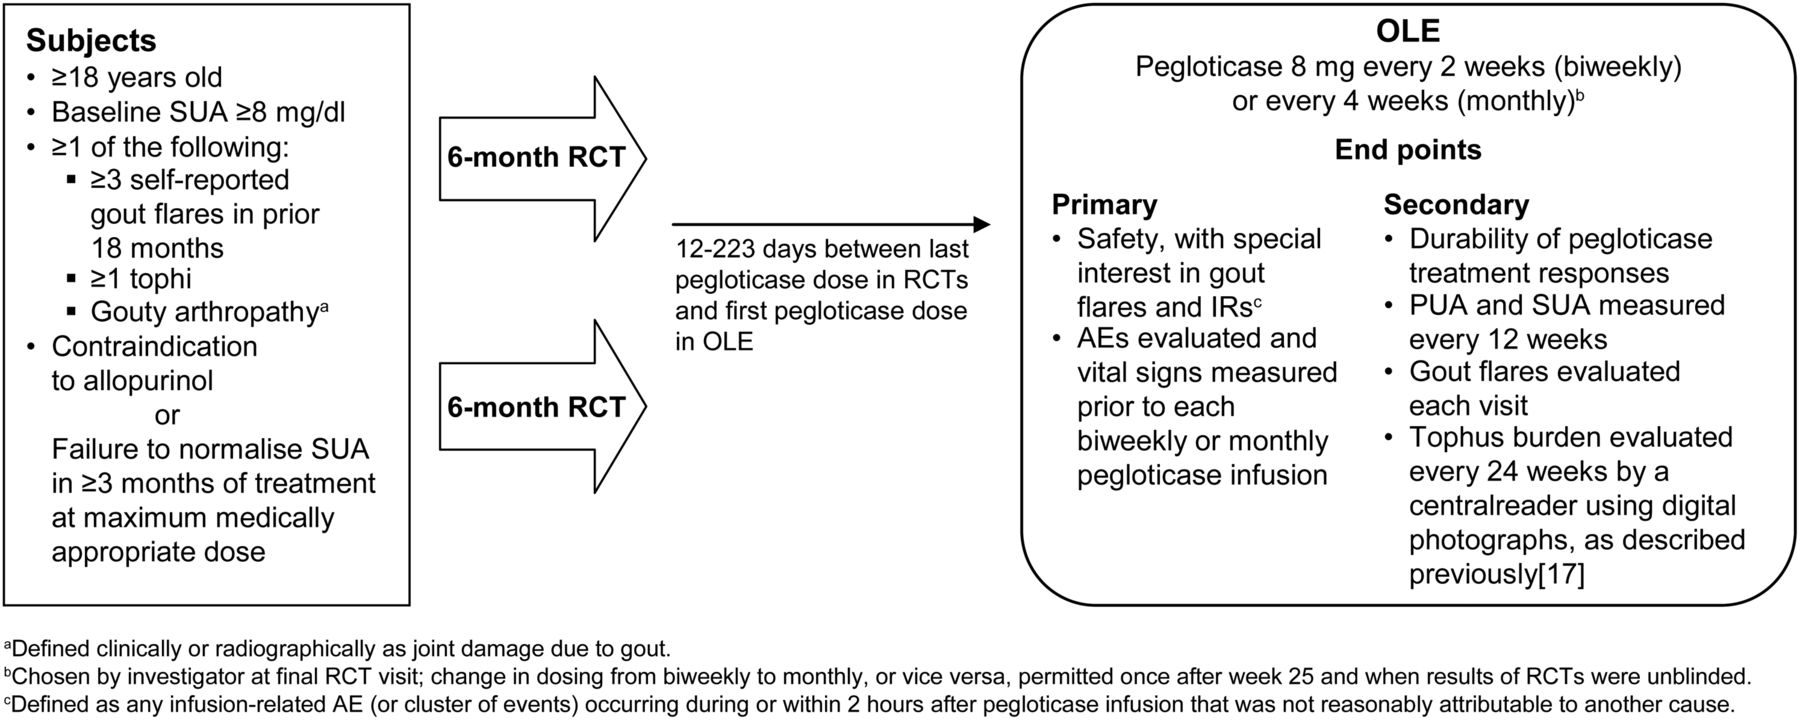 Long-term safety of pegloticase in chronic gout refractory